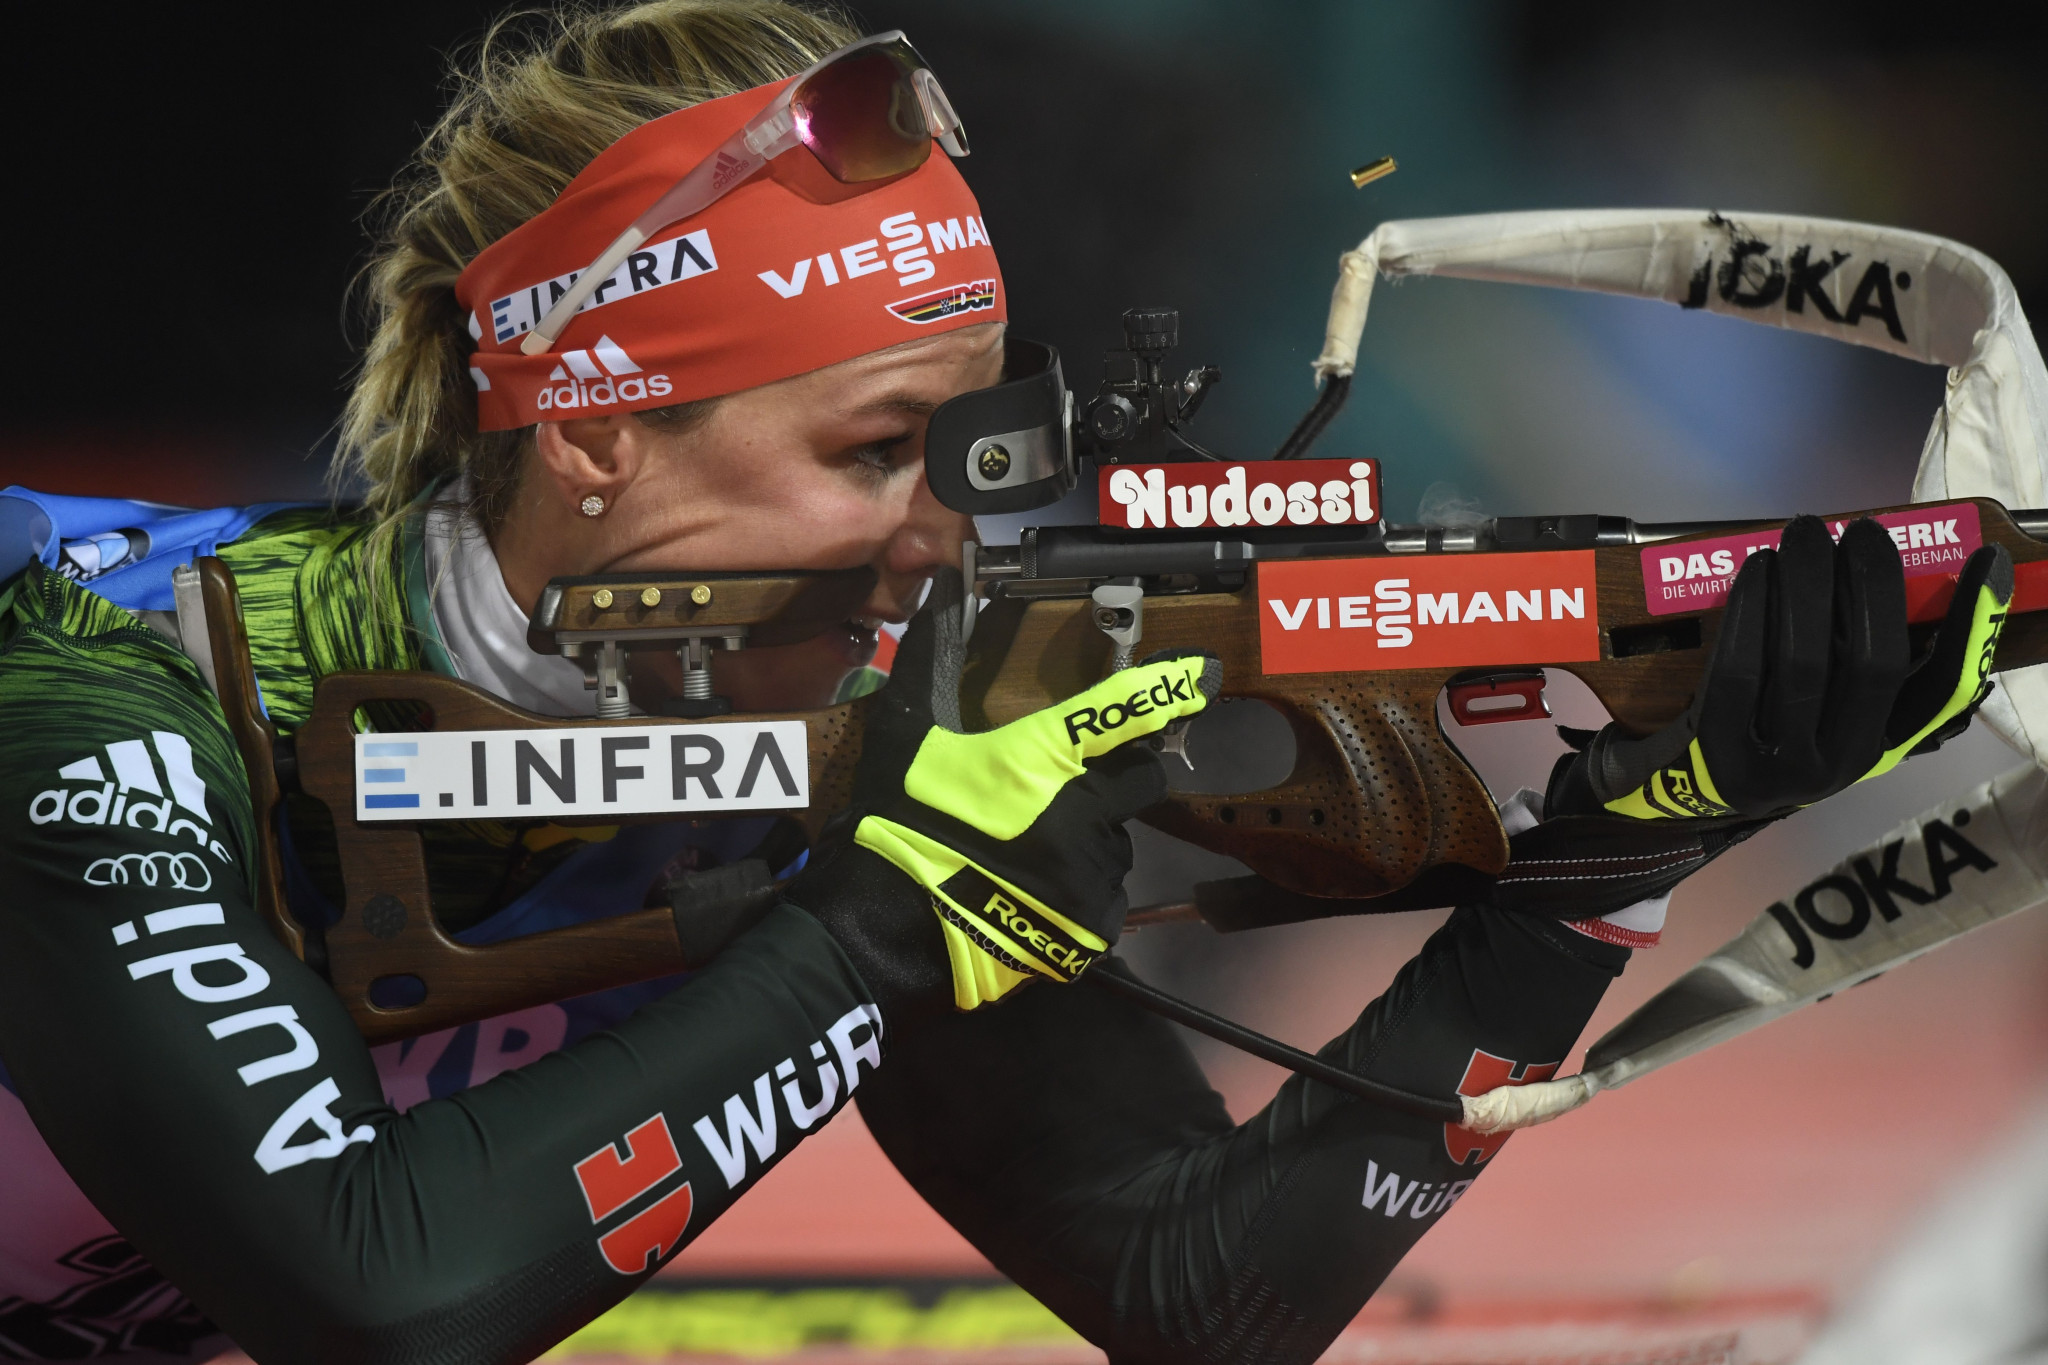 Olympic cross-country bronze medallist Herrmann secures maiden IBU World Cup victory